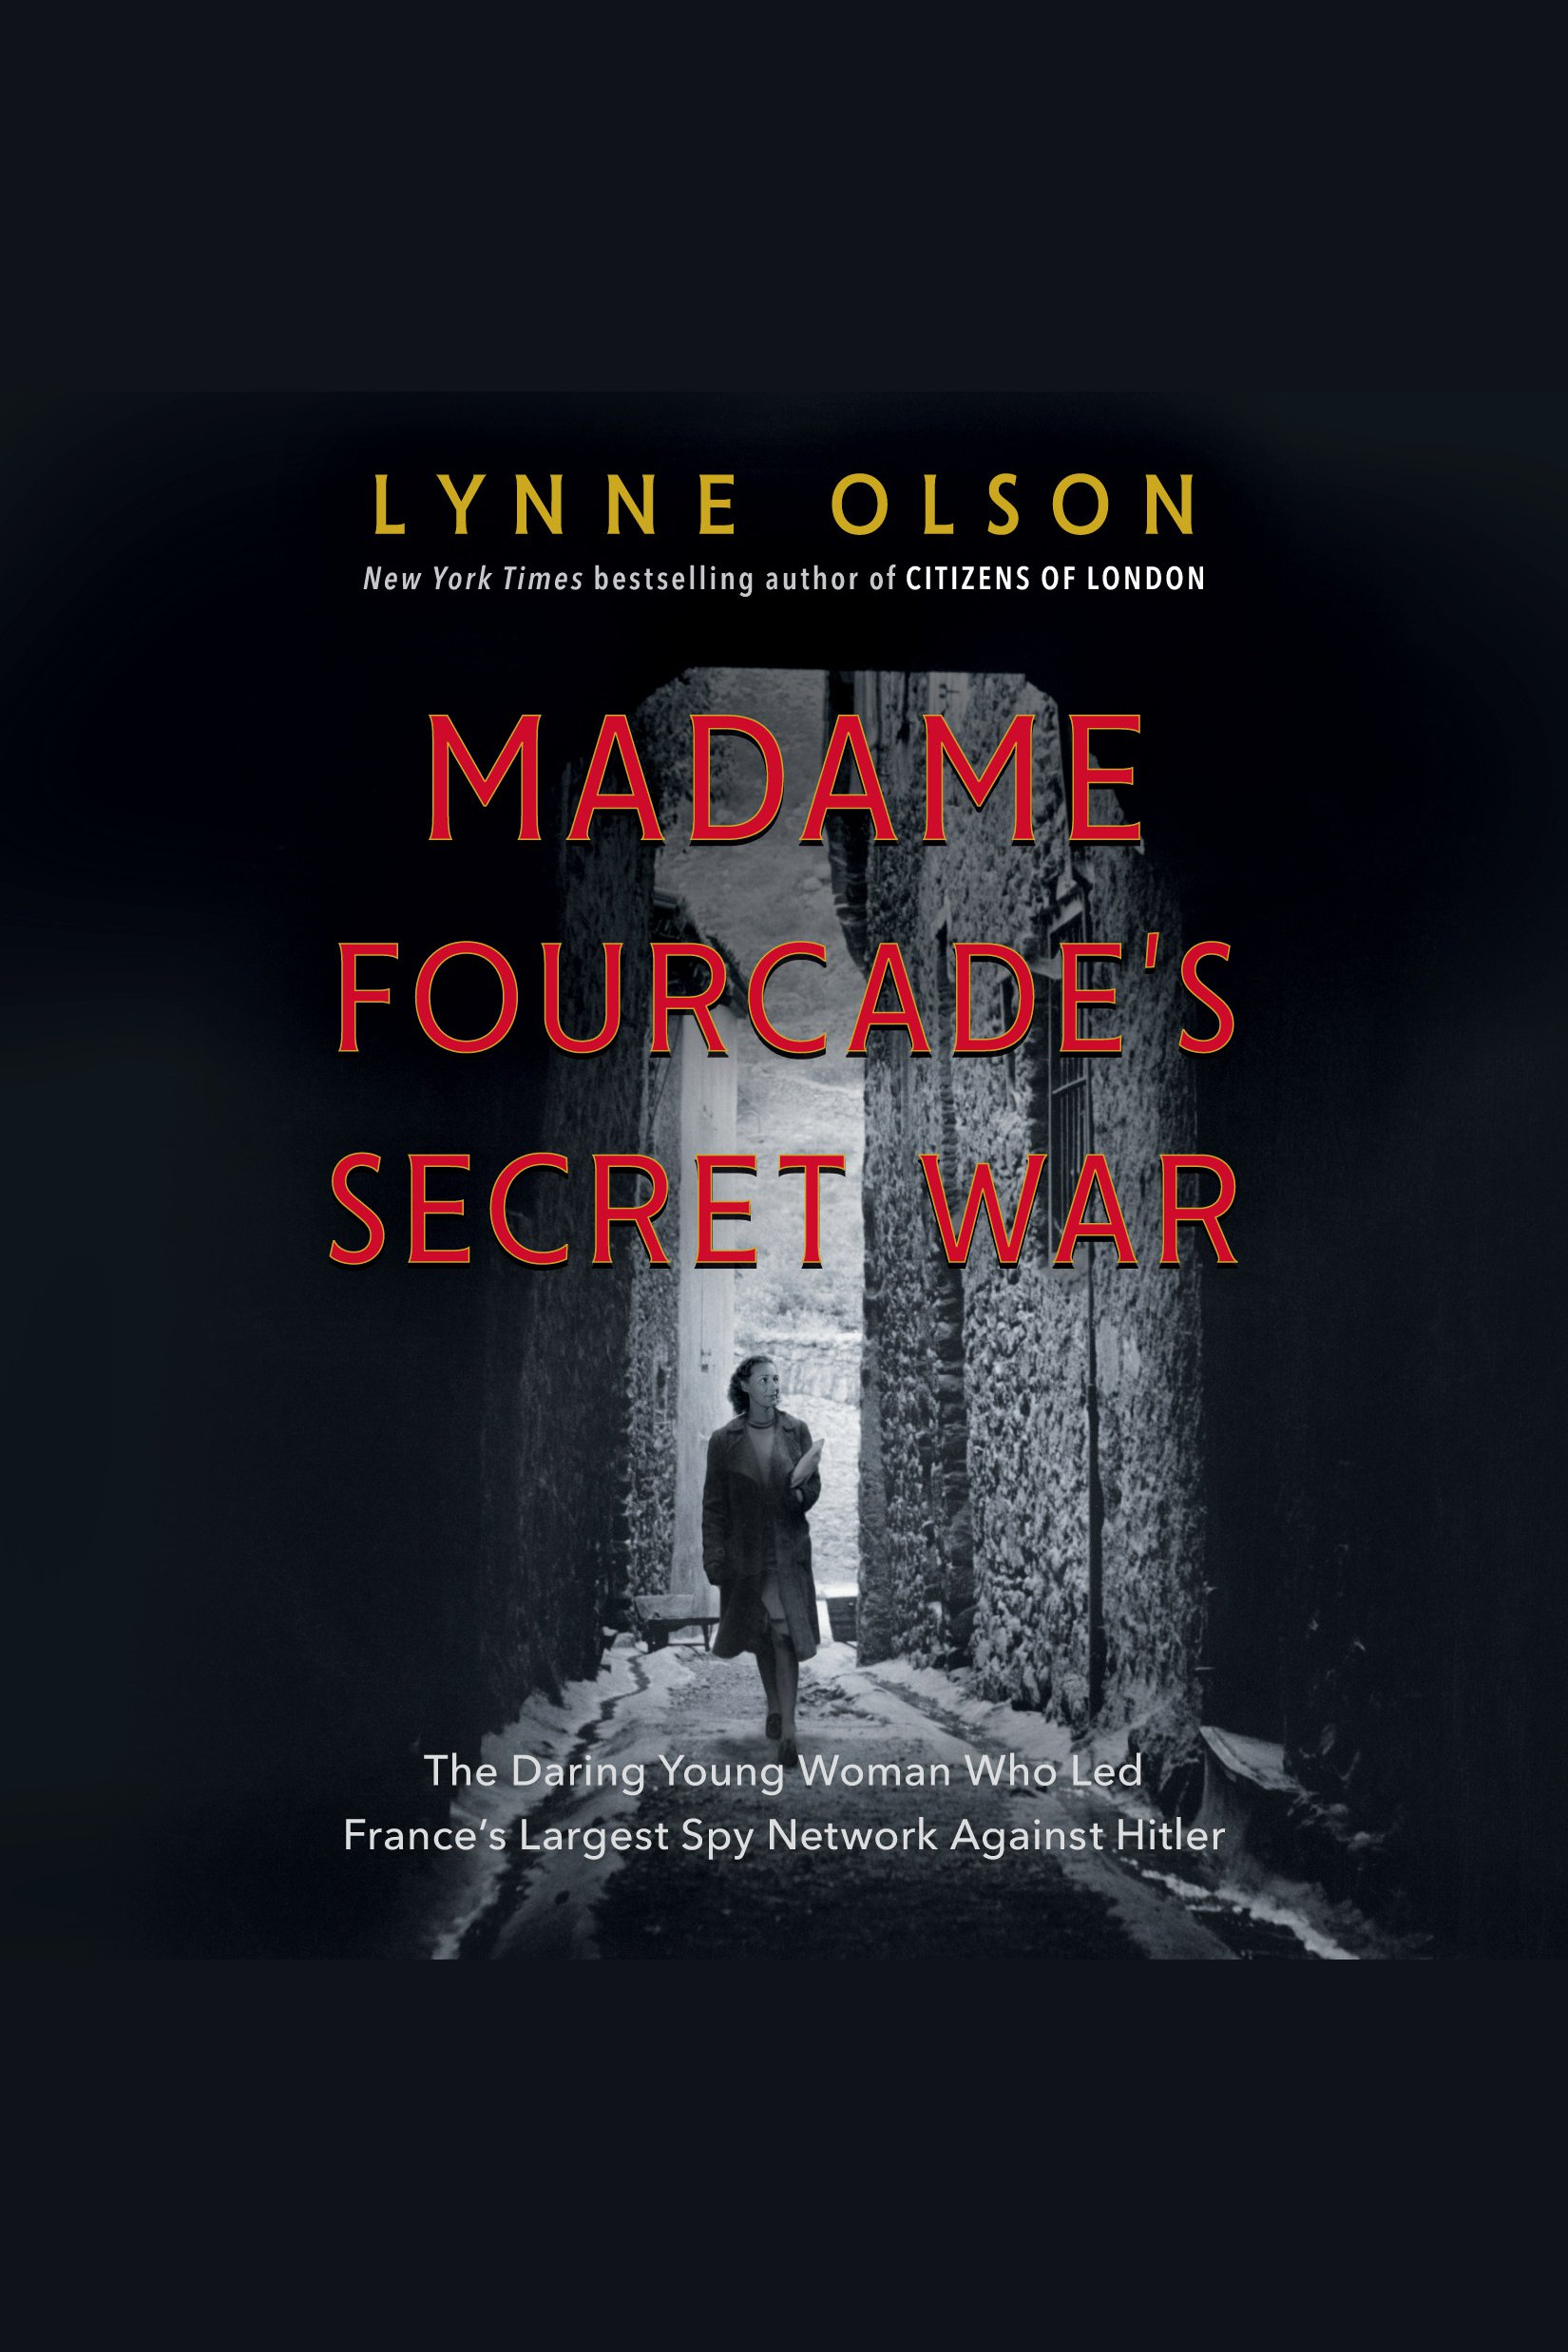 Madame Fourcade's Secret War The Daring Young Woman Who Led France's Largest Spy Network Against Hitler